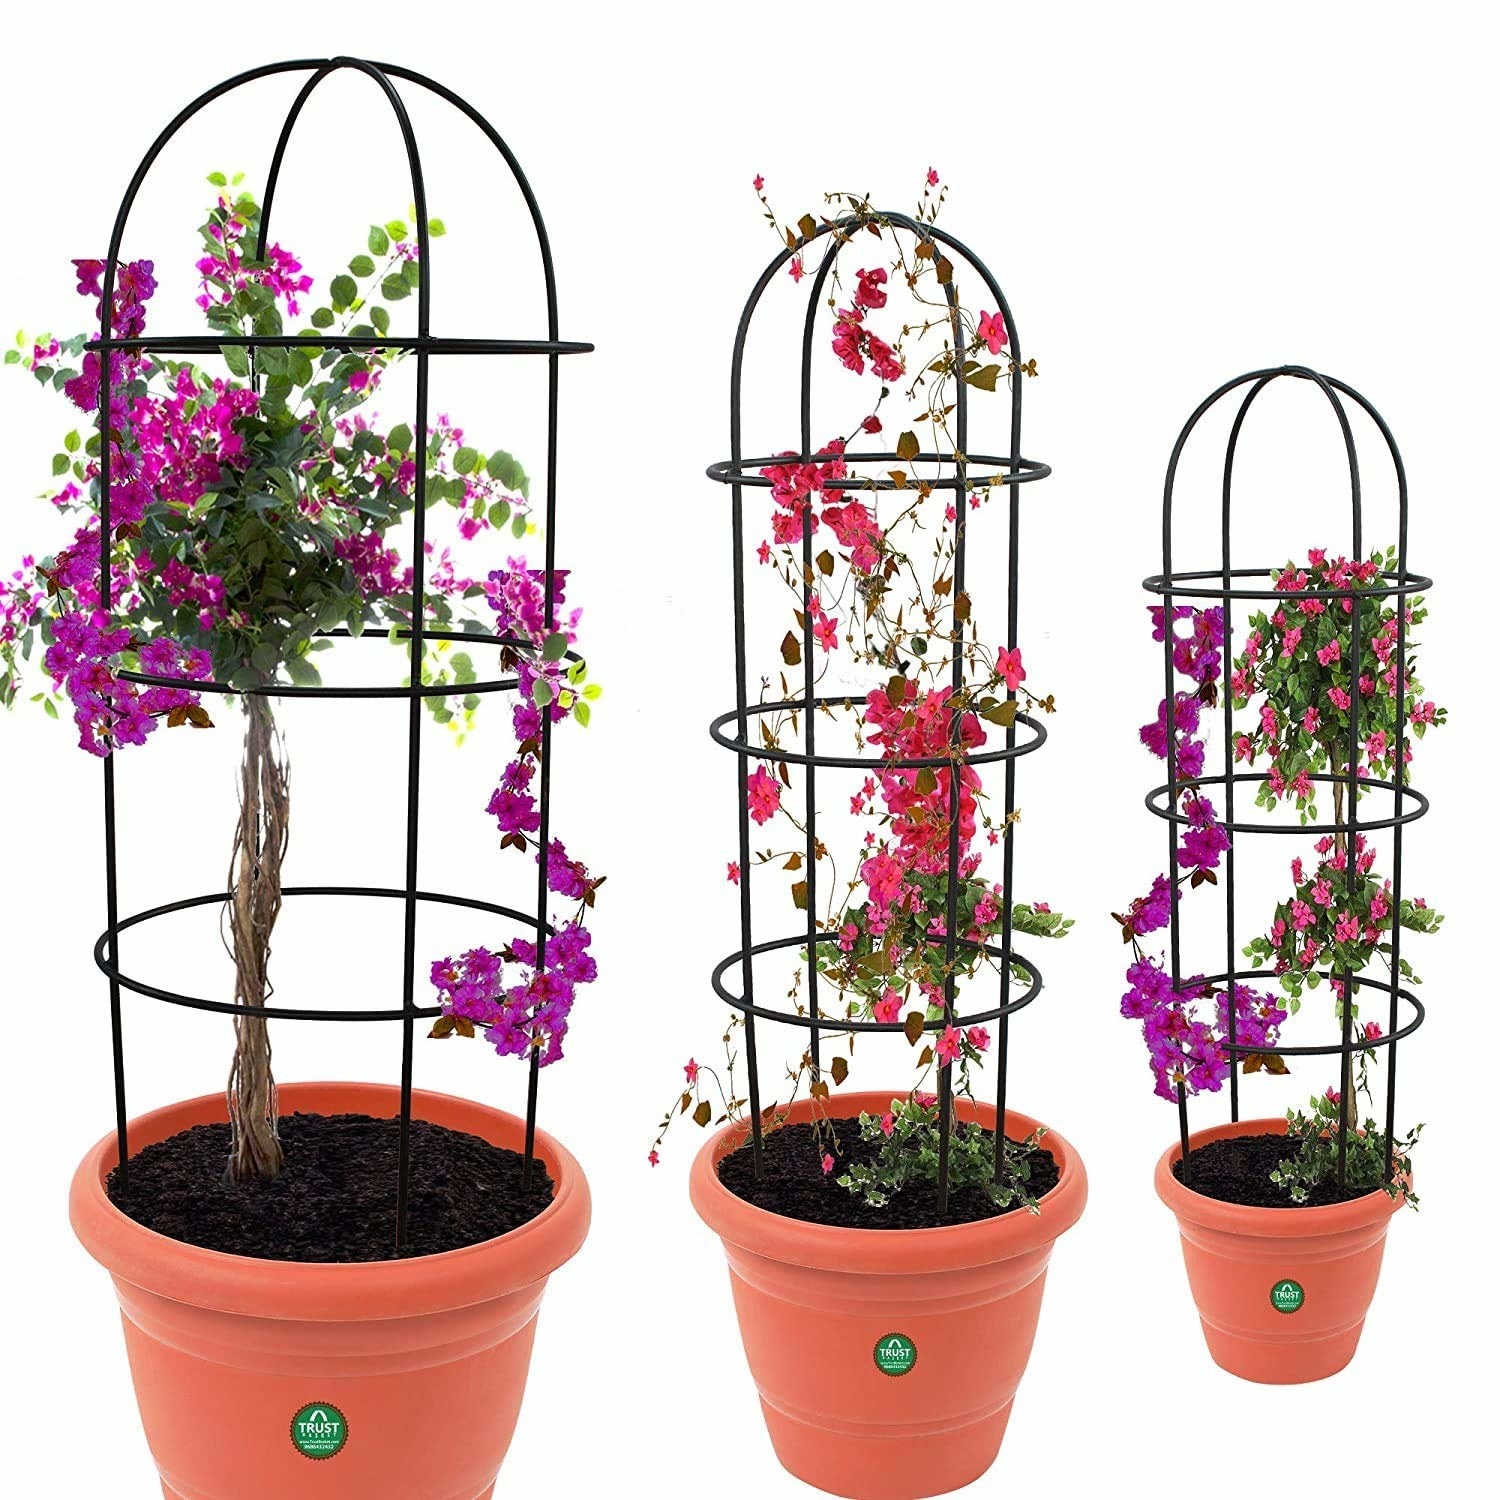 3 potted plants with an obelisk trellis attached for plant support.